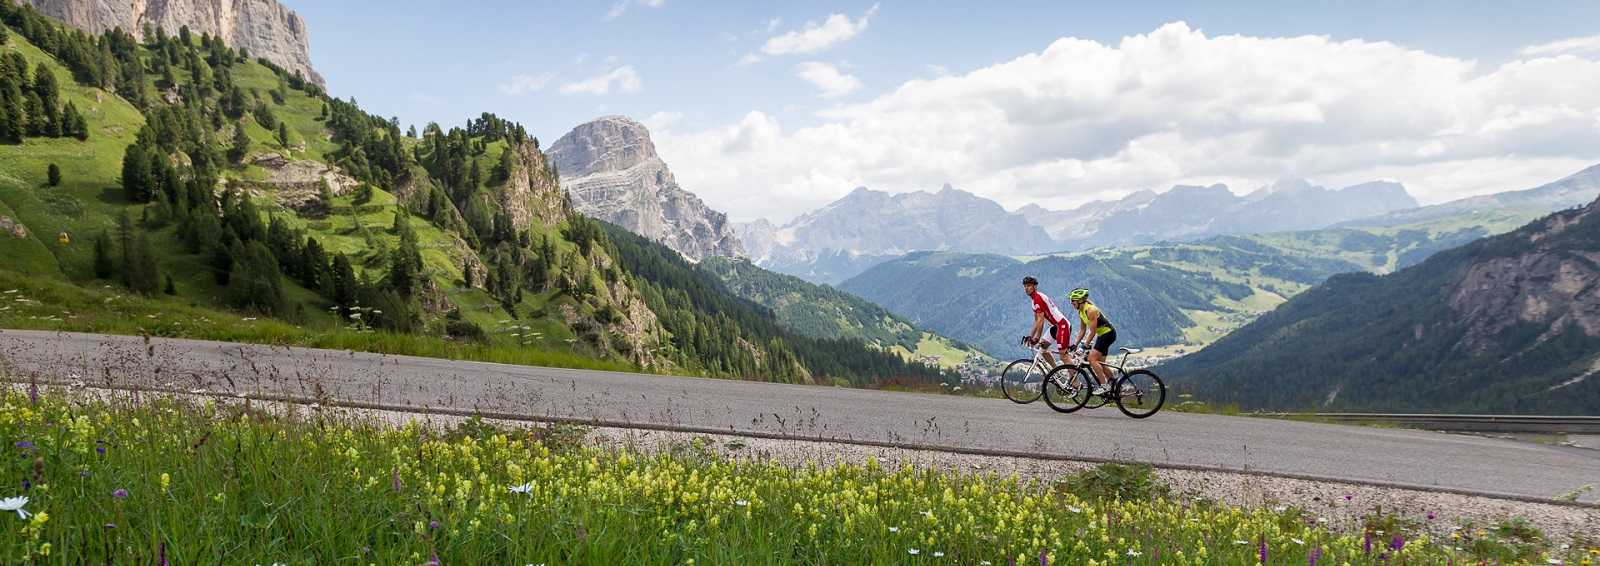 Cycling through the alps